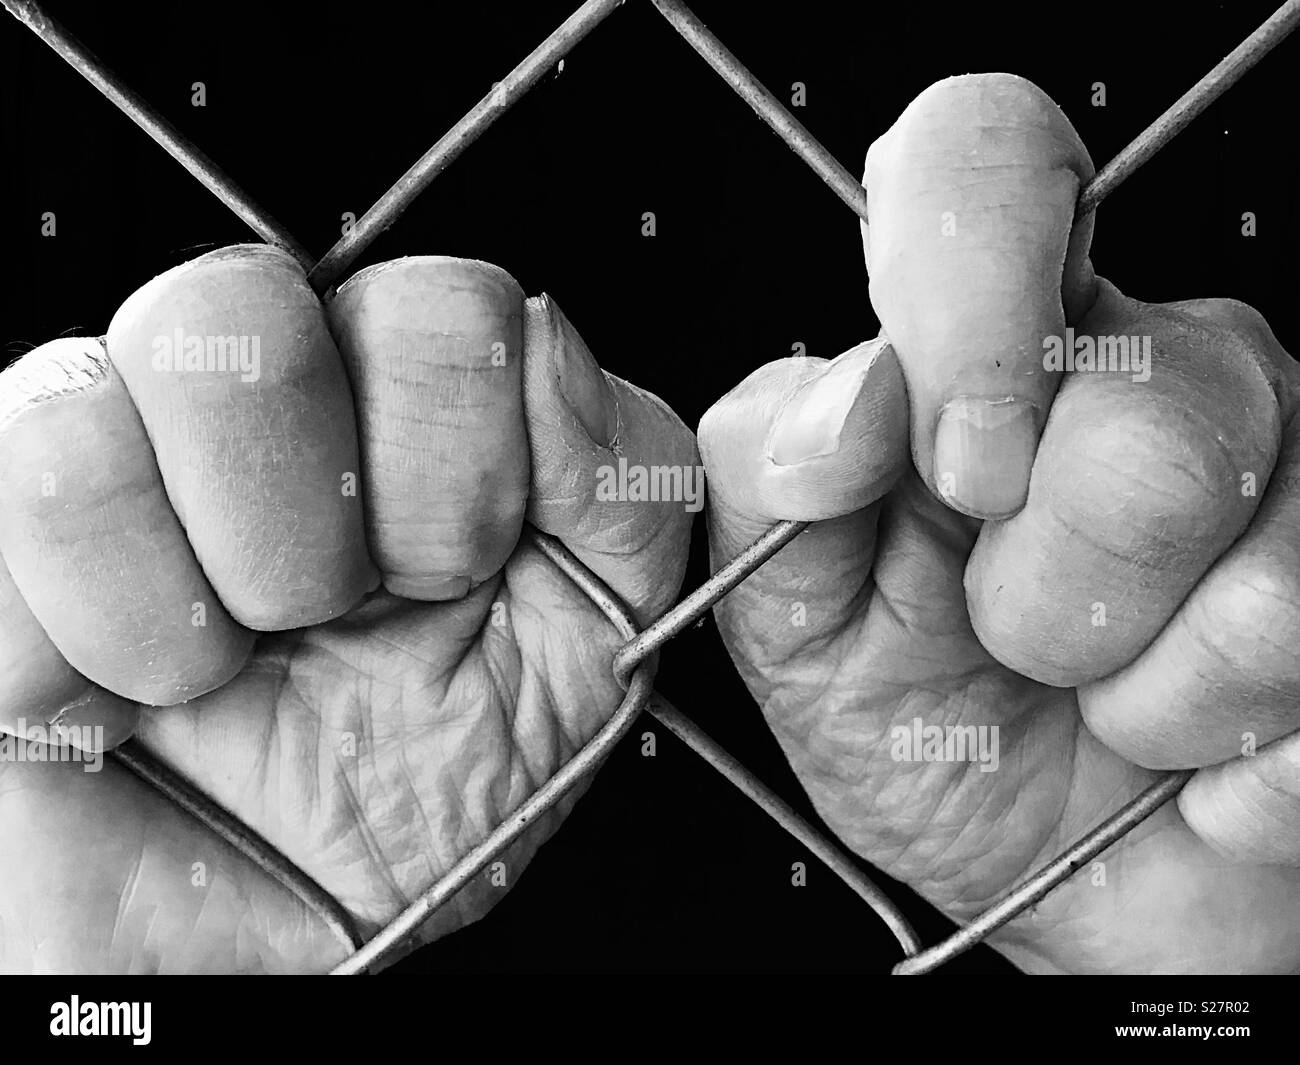 Two hands grasping chain link fence, in black and white - Stock Image